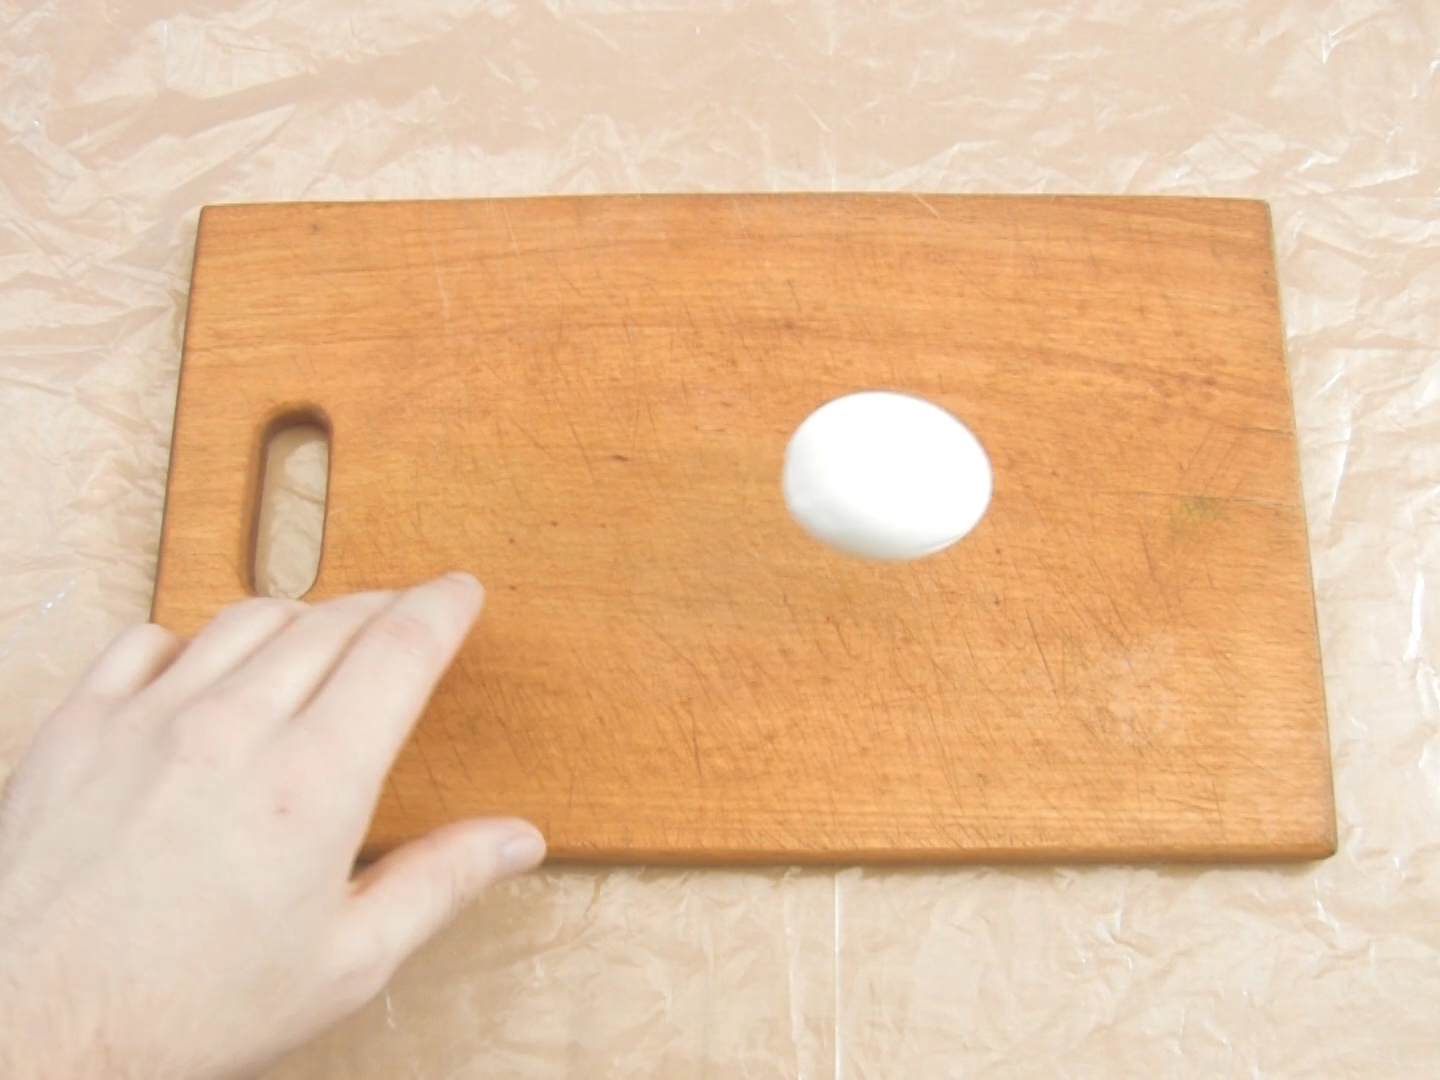 How To Make A Bouncy Egg With Pictures